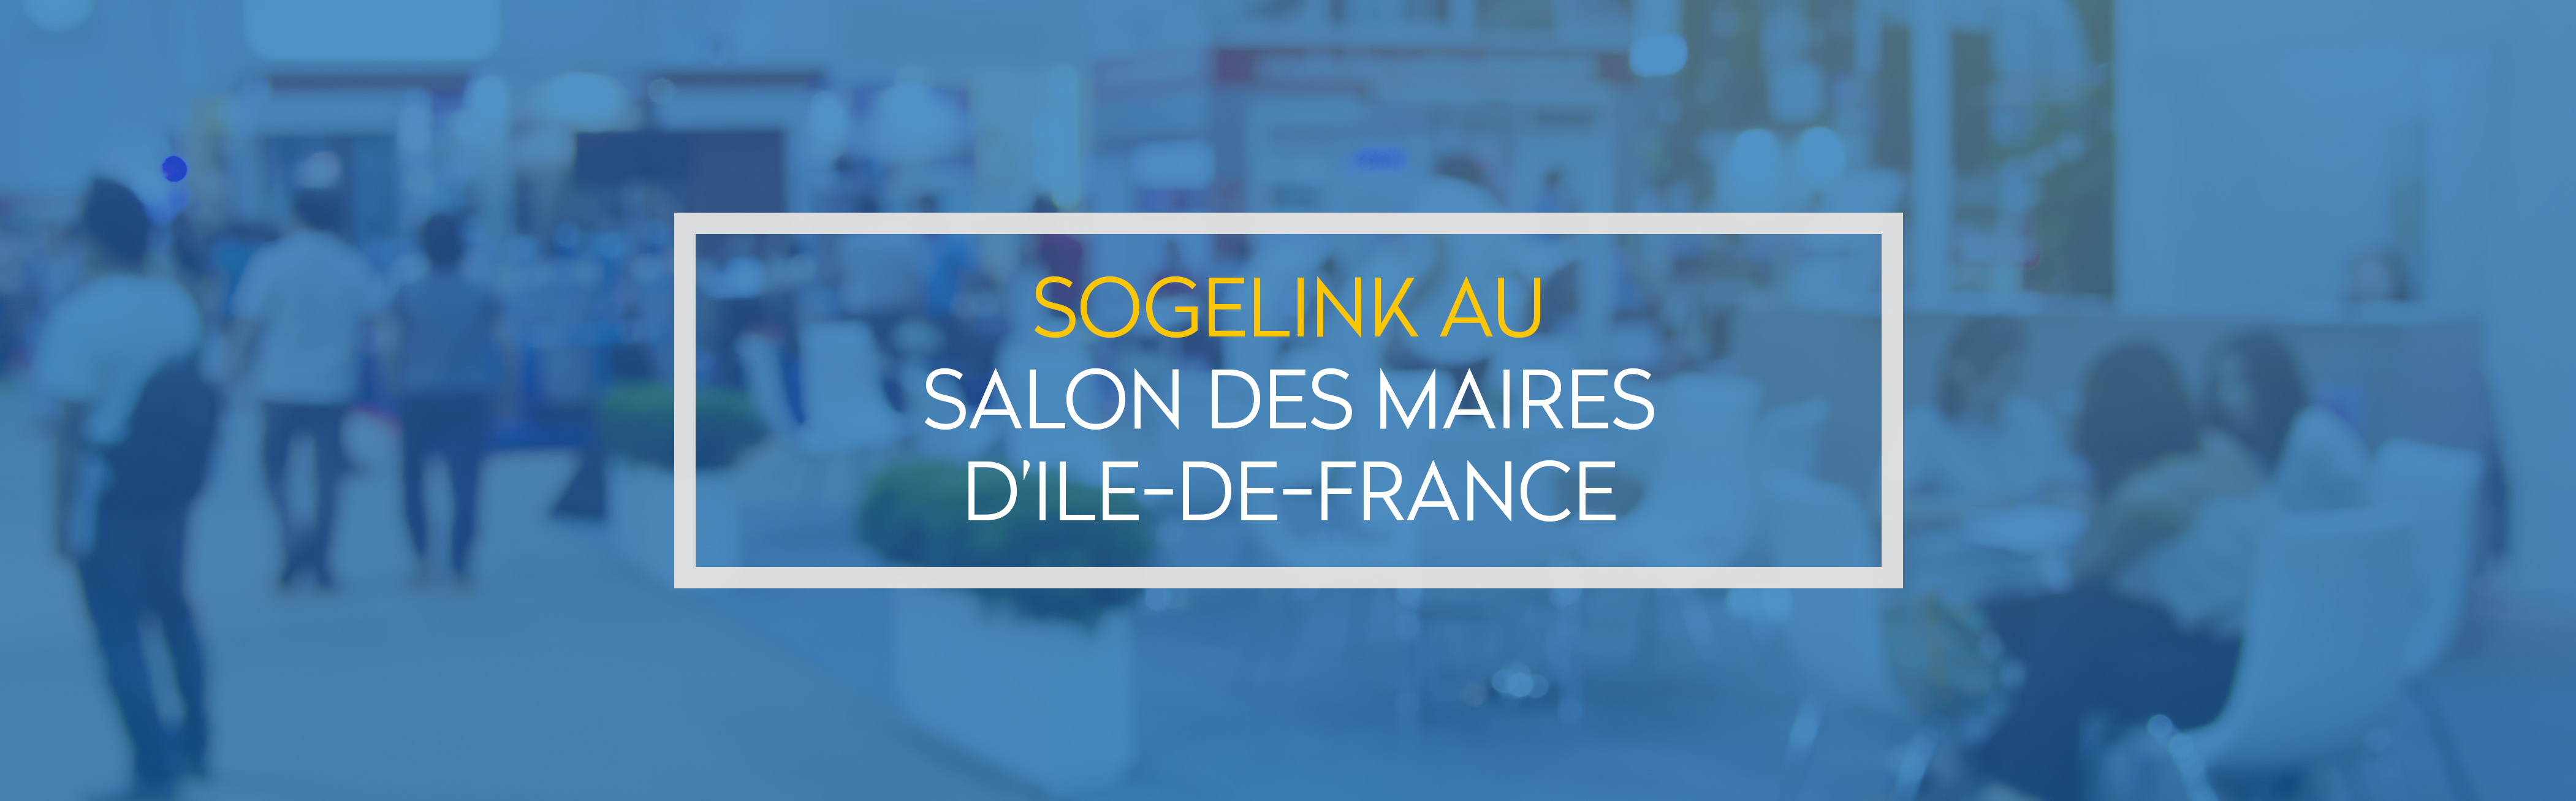 Evenement sogelink au salon des maires d 39 ile de france - Salon des maires d ile de france ...